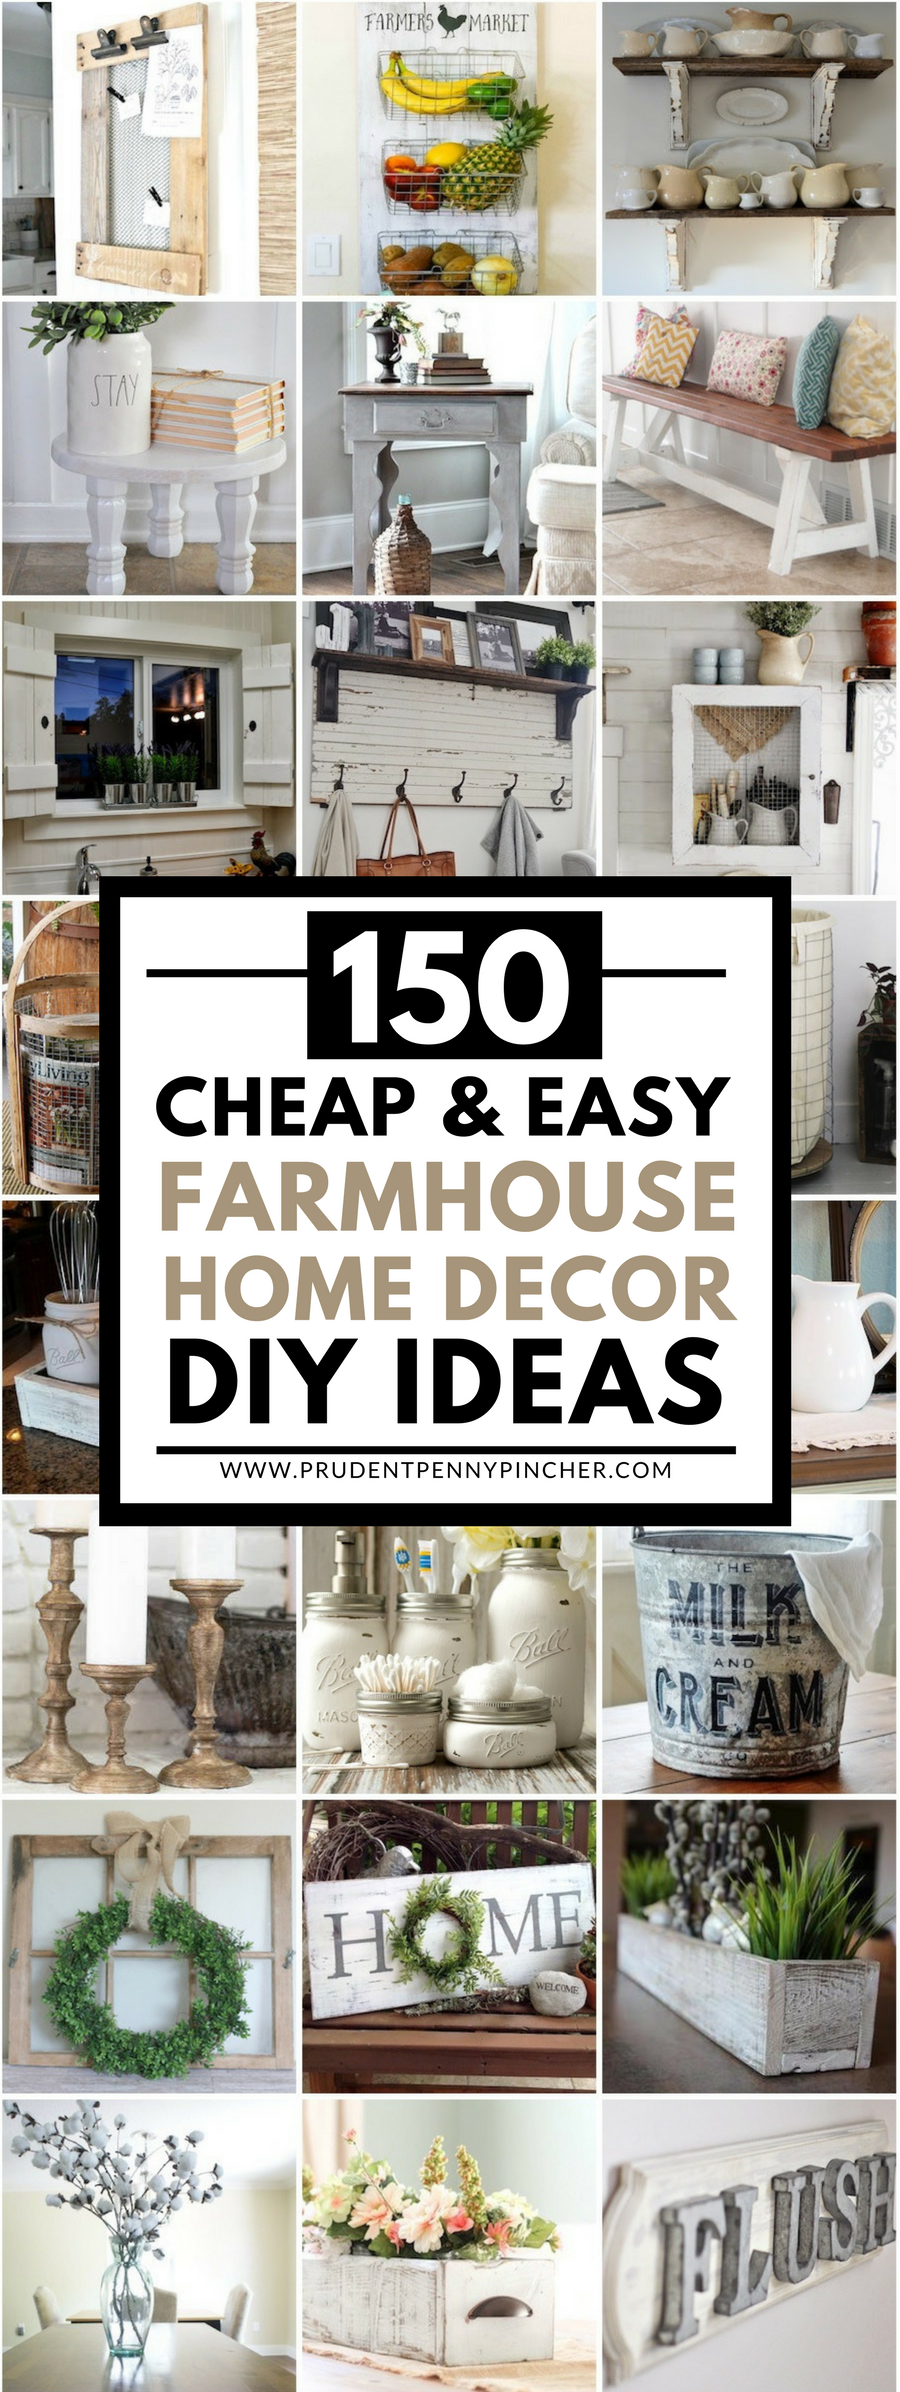 150 Cheap And Easy Diy Farmhouse Decor Ideas Farmhouse Style Diy Diy Farmhouse Decor Farmhouse Decor